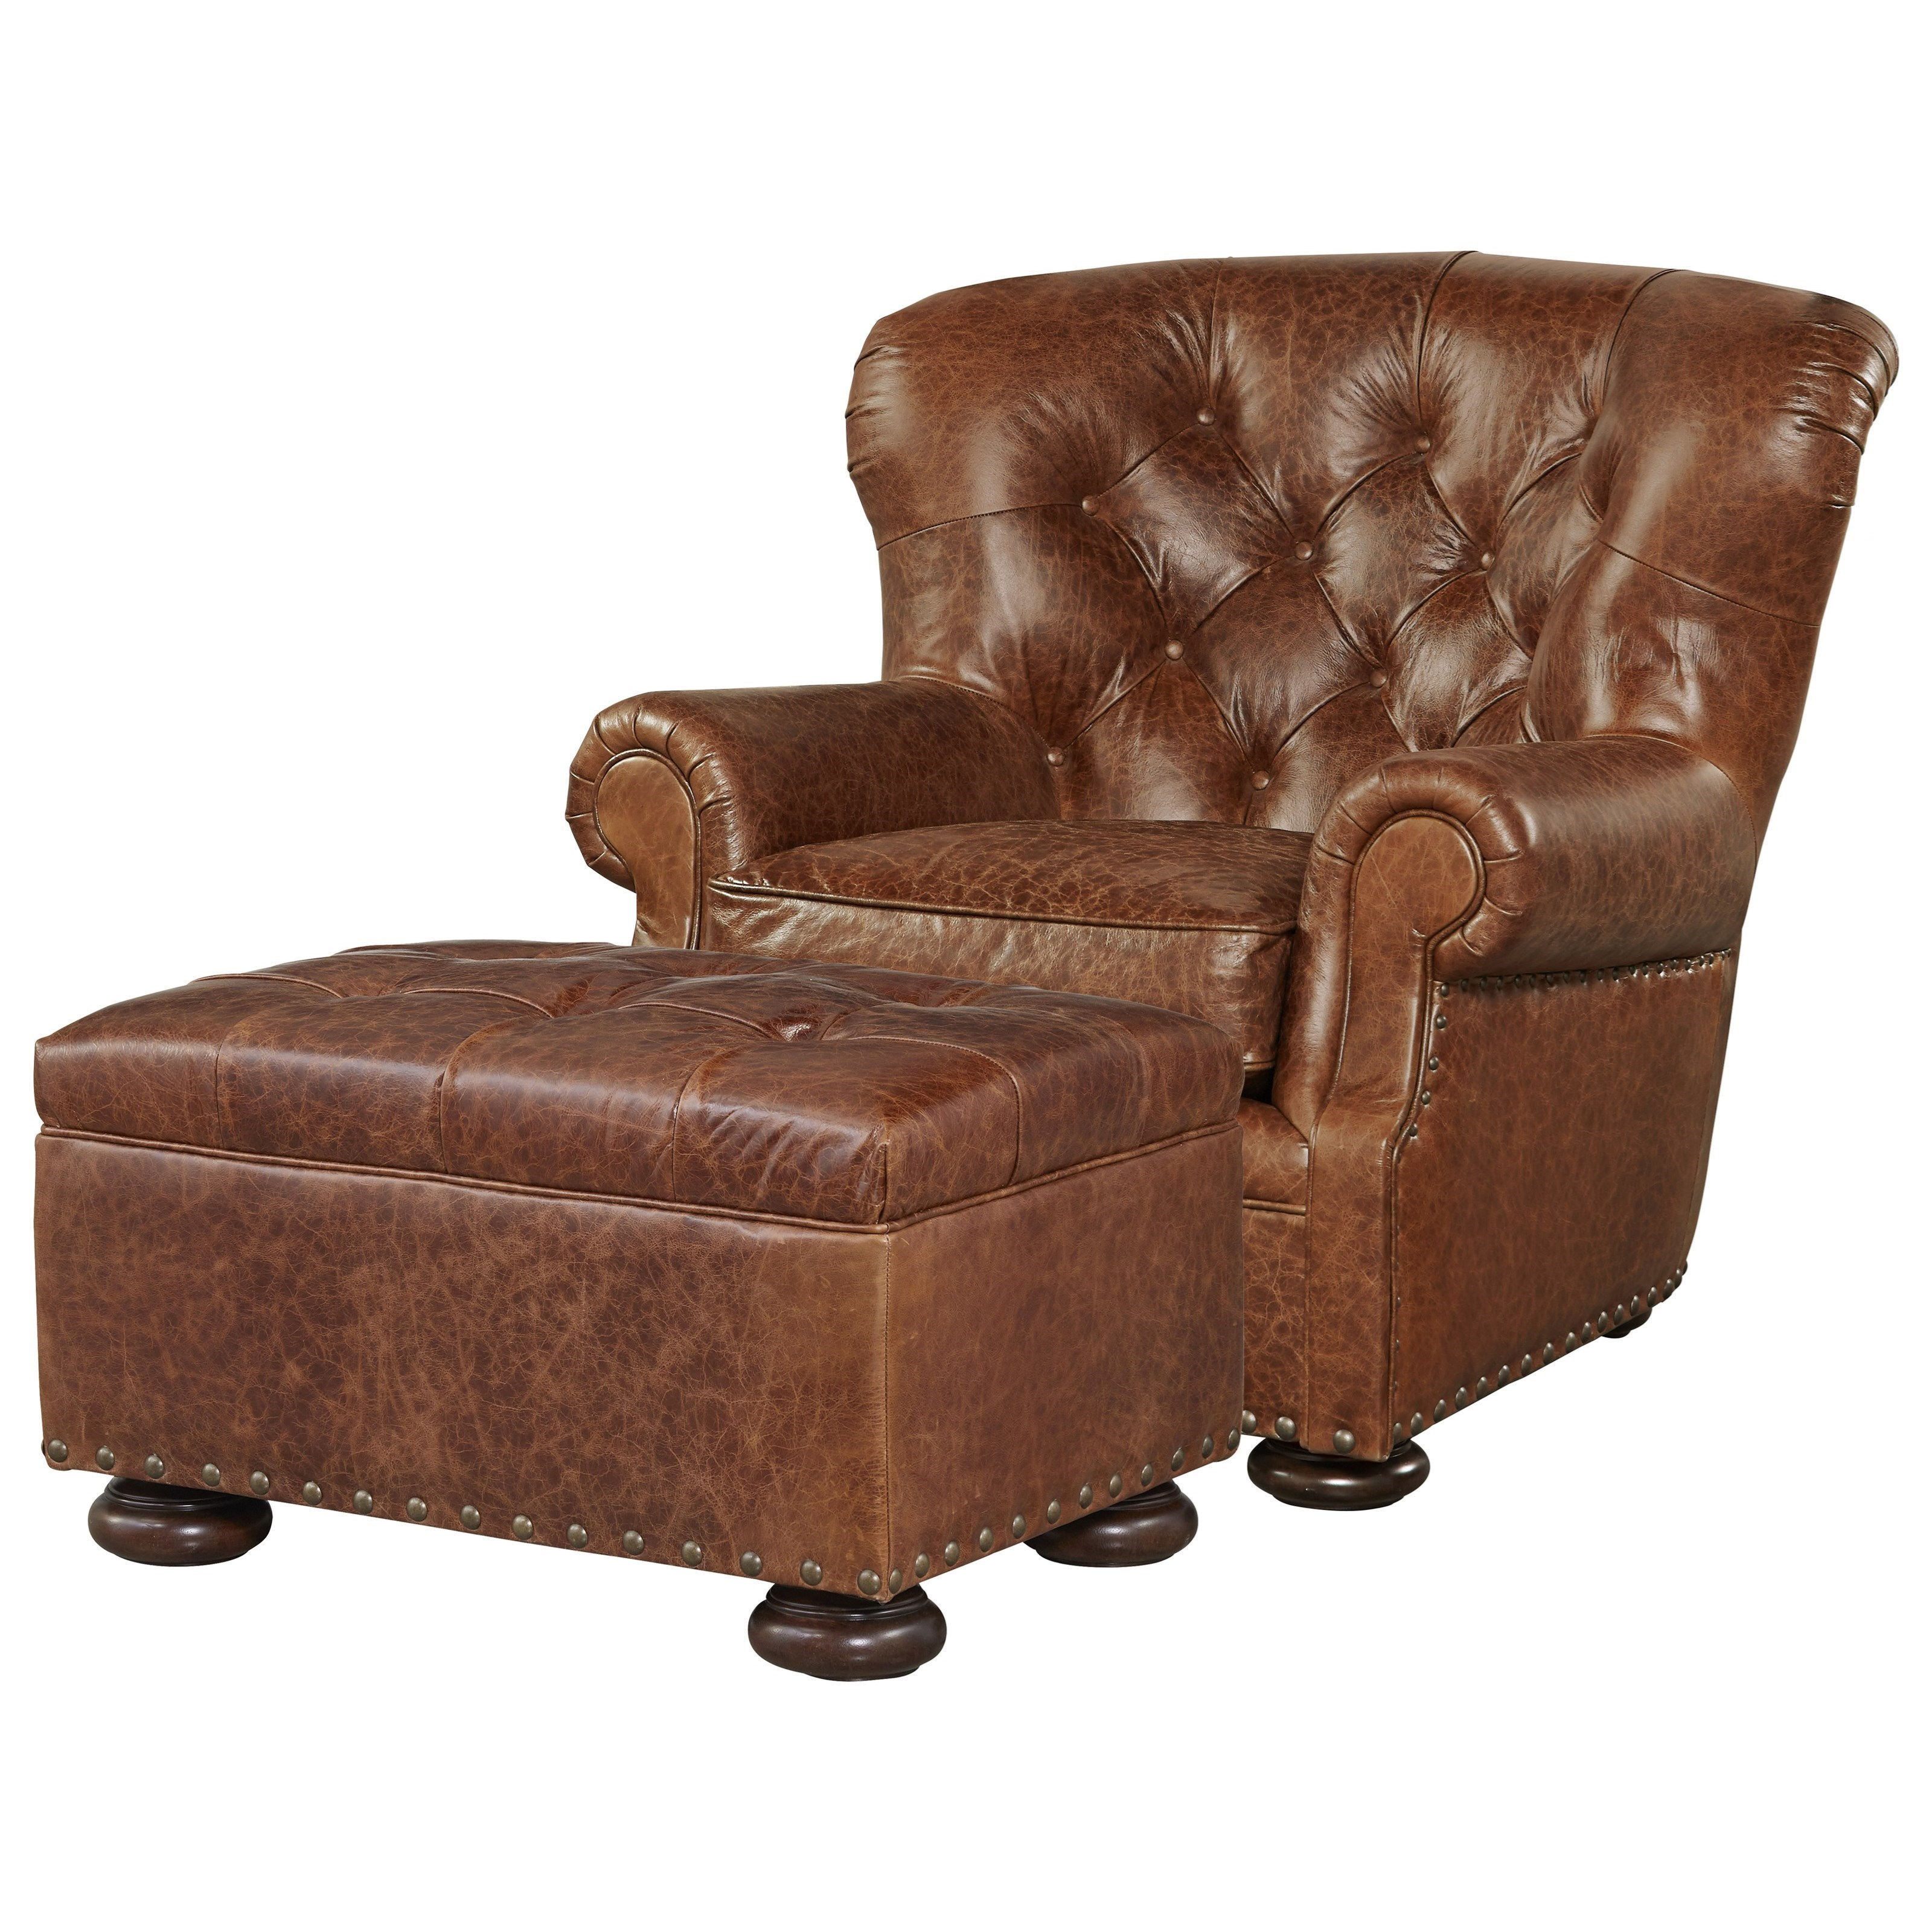 Universal Maxwell Chair And Ottoman Set With Button Tufting